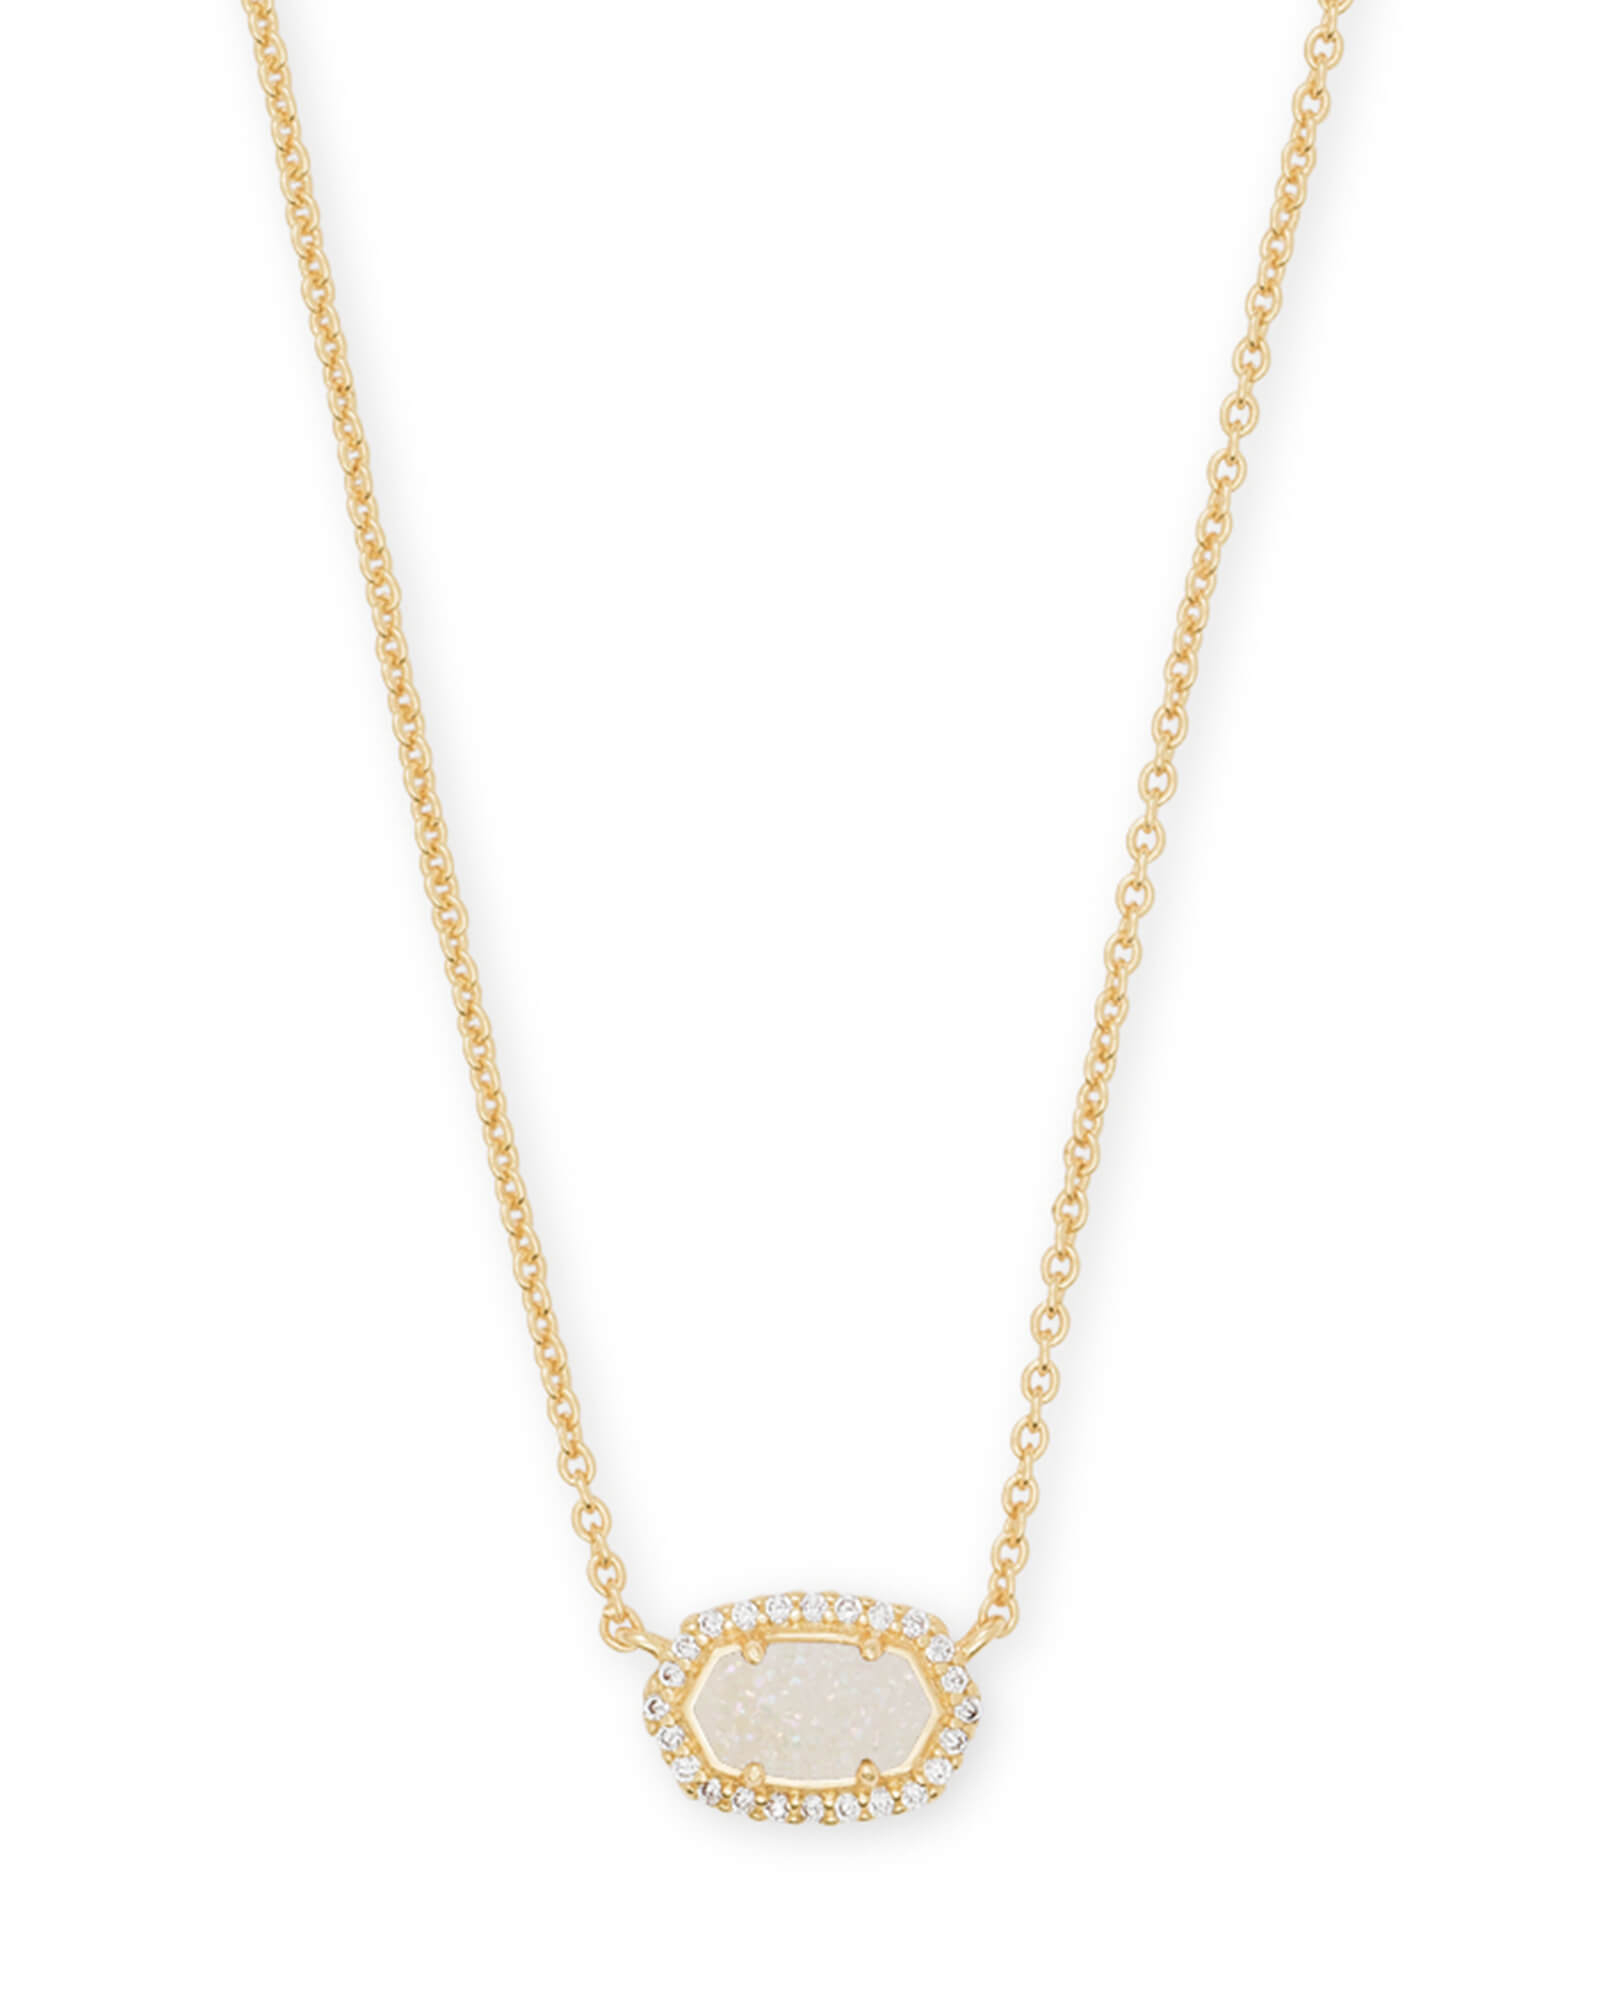 Chelsea Gold Pendant Necklace In Iridescent Drusy | Kendra Scott Inside 2020 Square Sparkle Halo Pendant Necklaces (View 7 of 25)